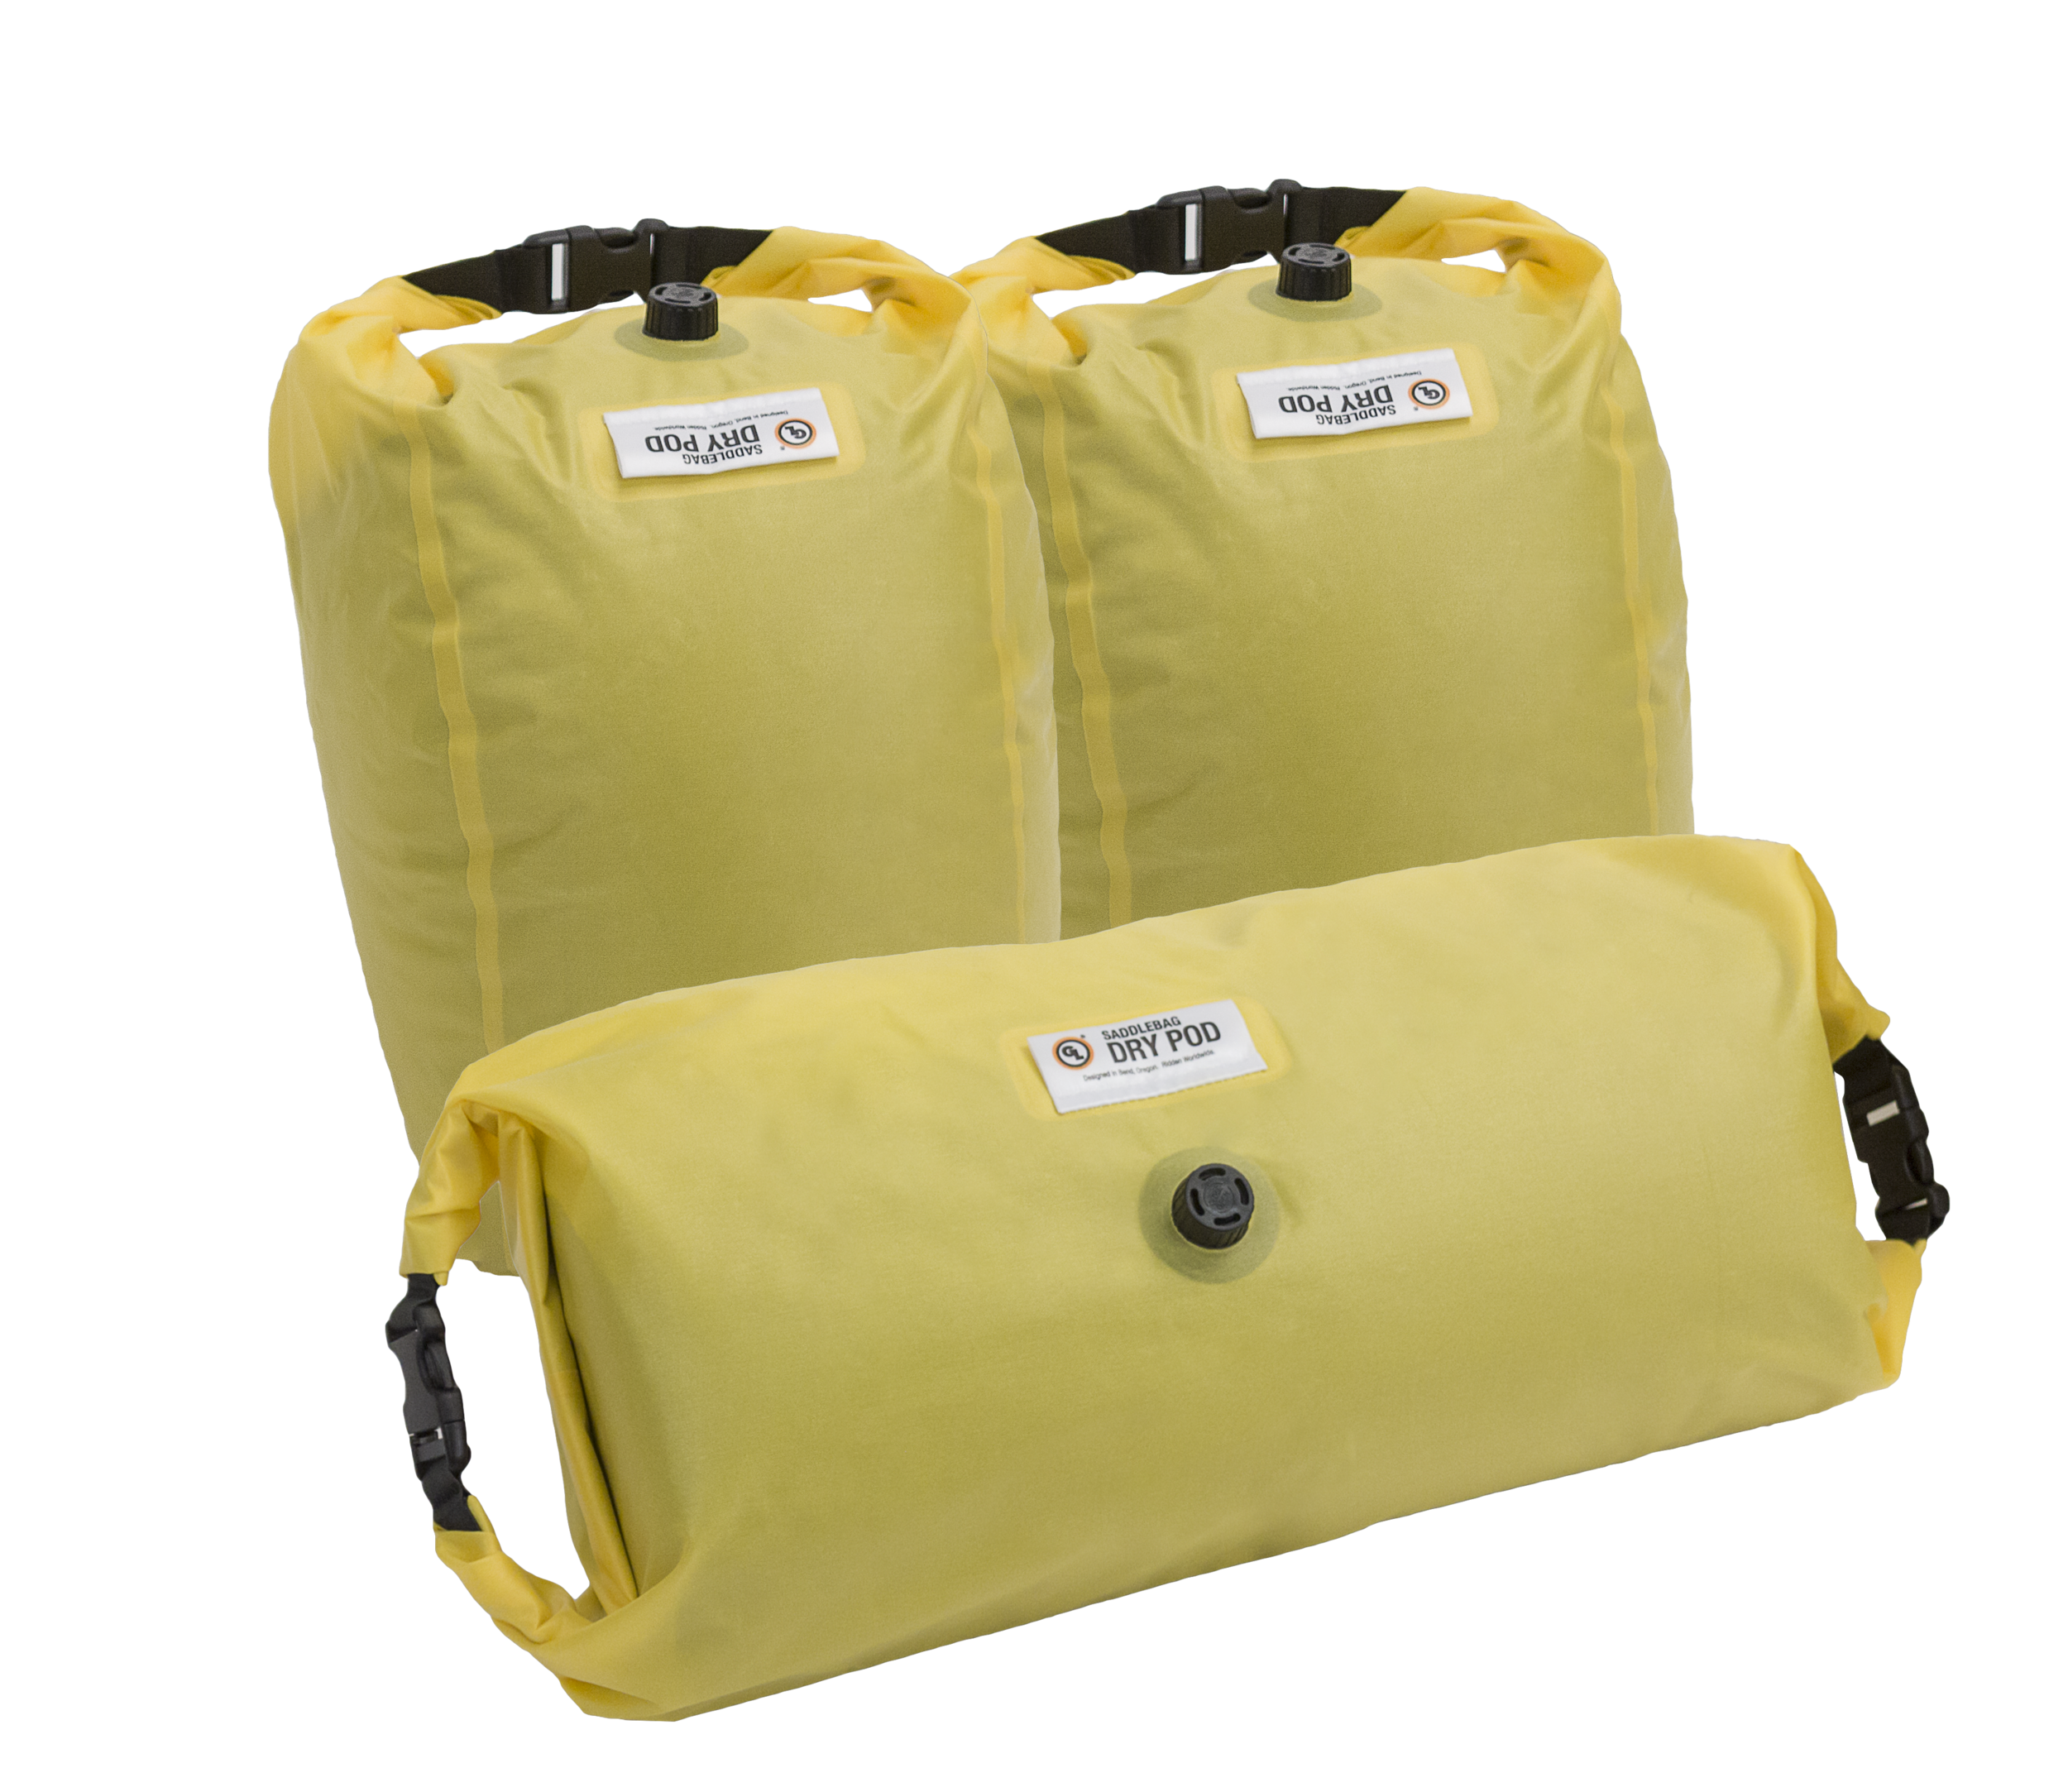 Coyote-Great Basin-Rolltop Dry bags.png